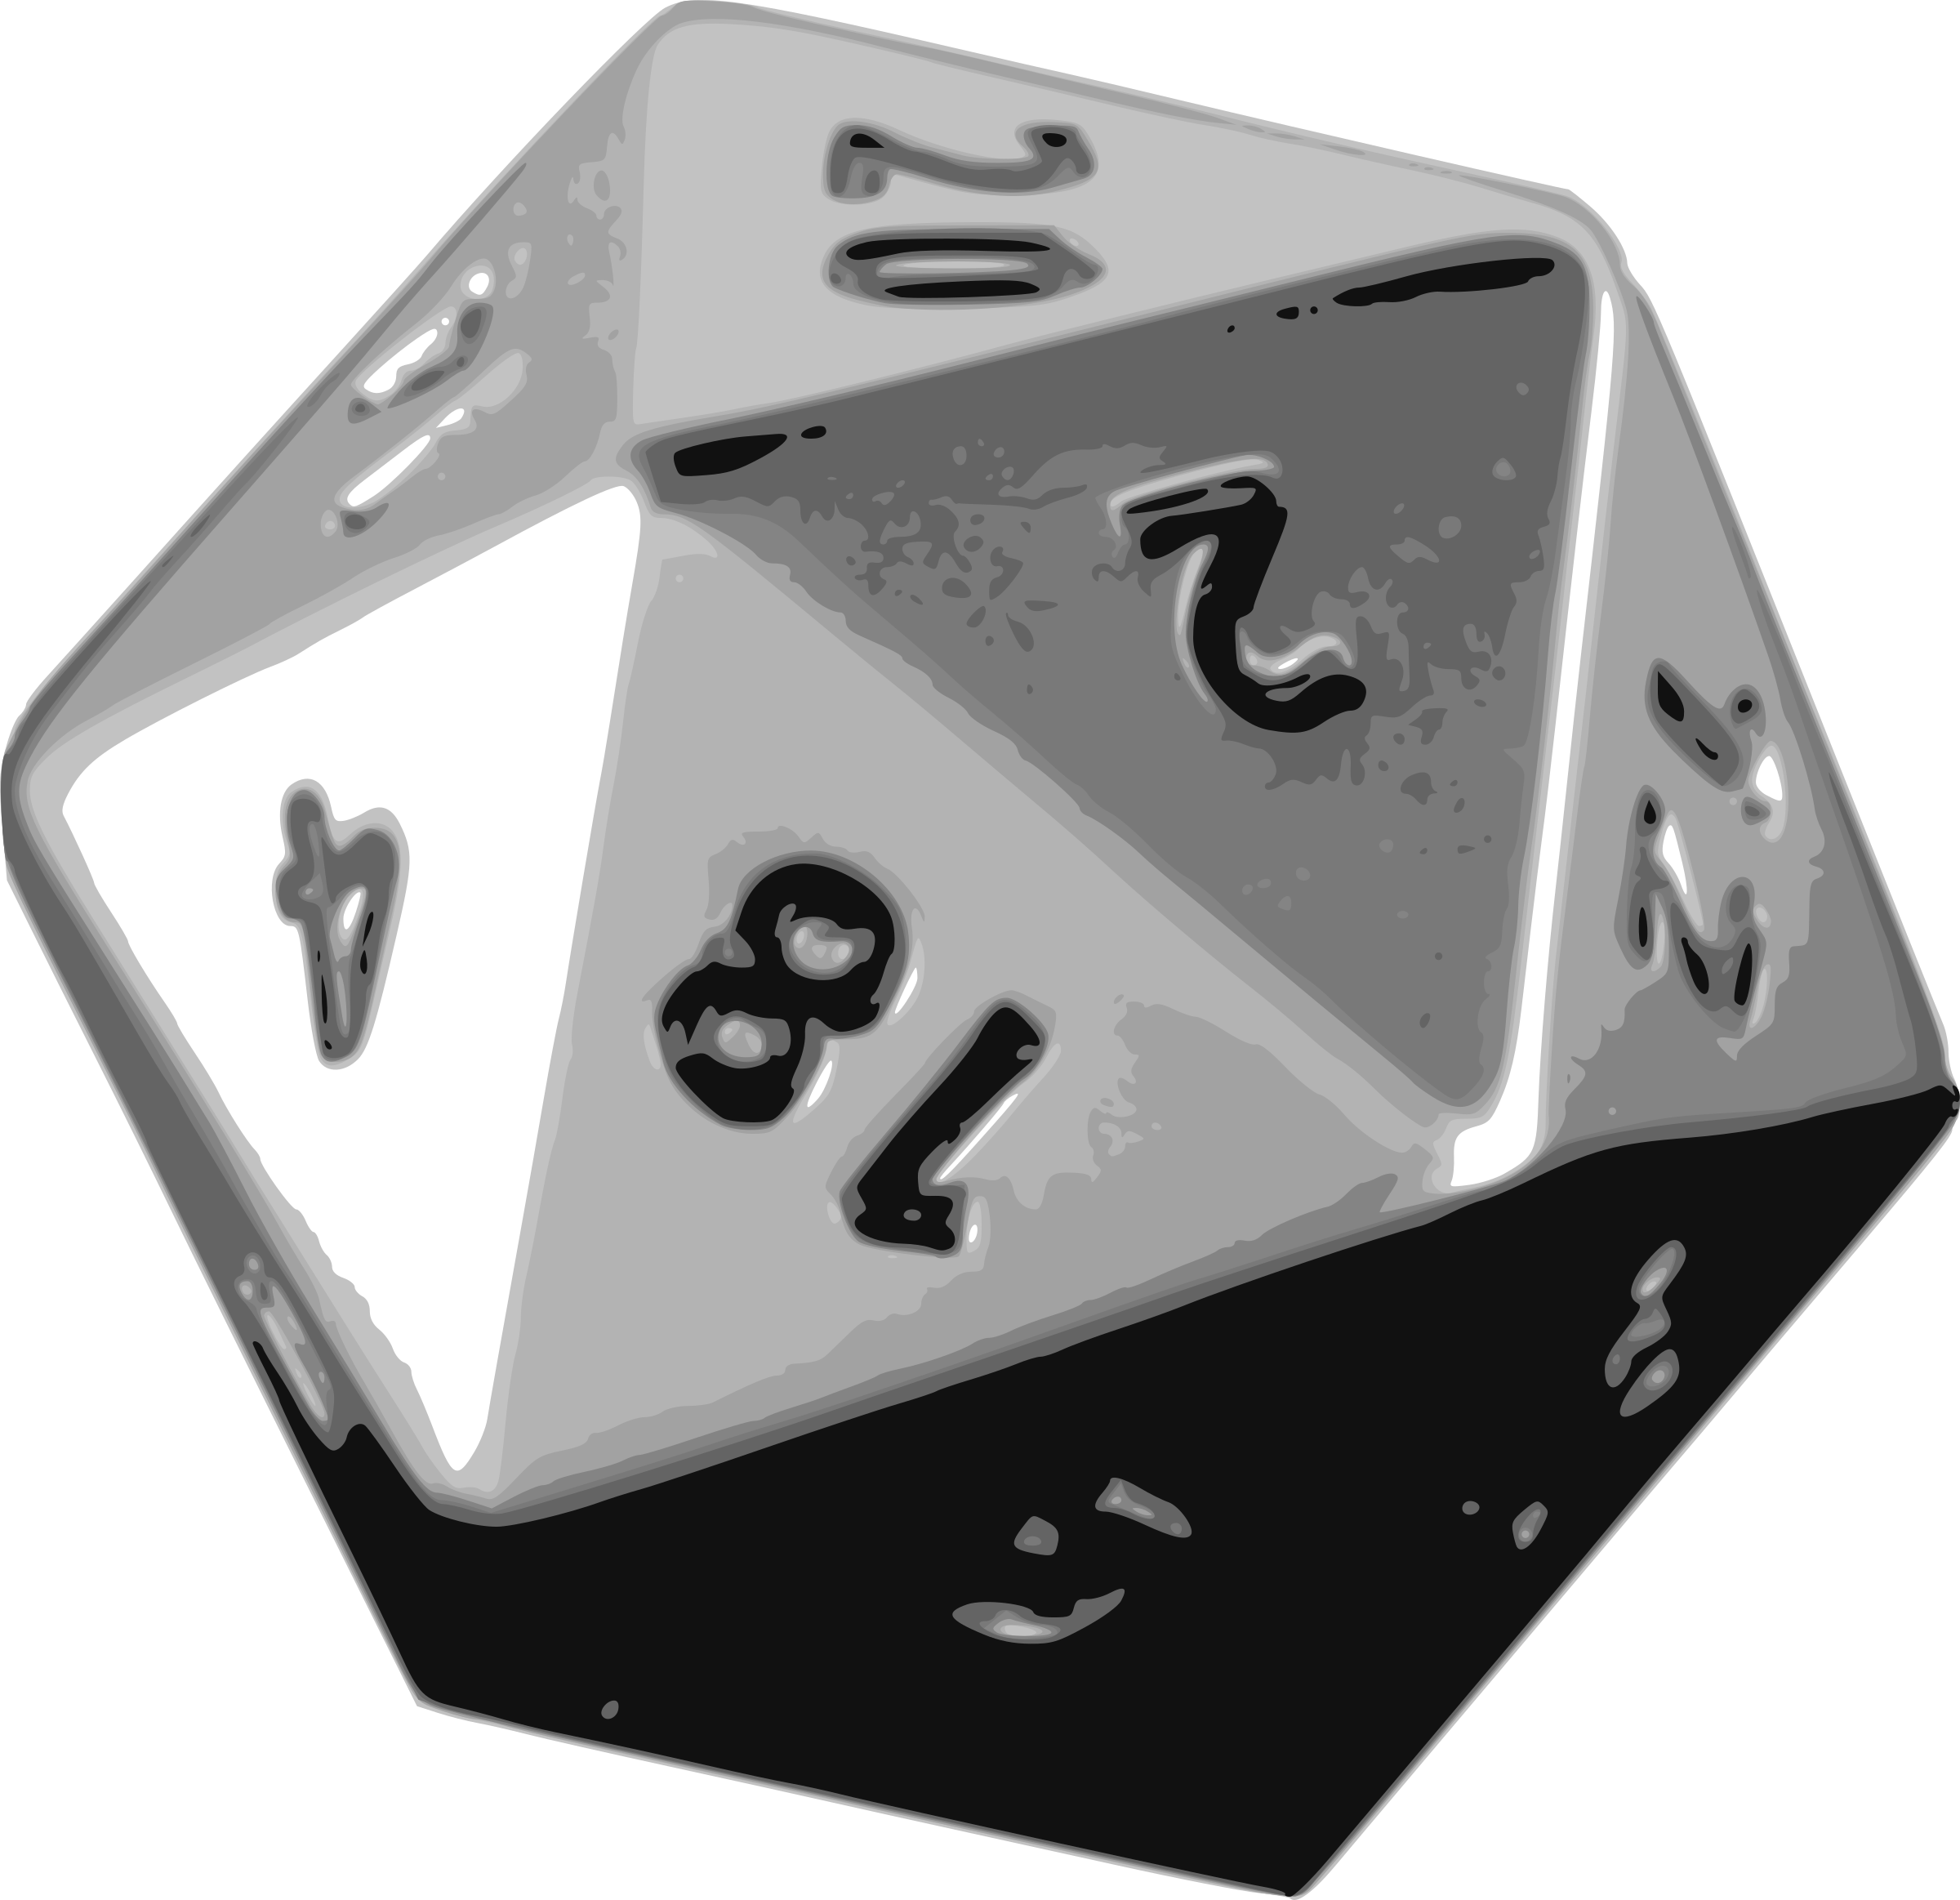 D20 by ClayDowling